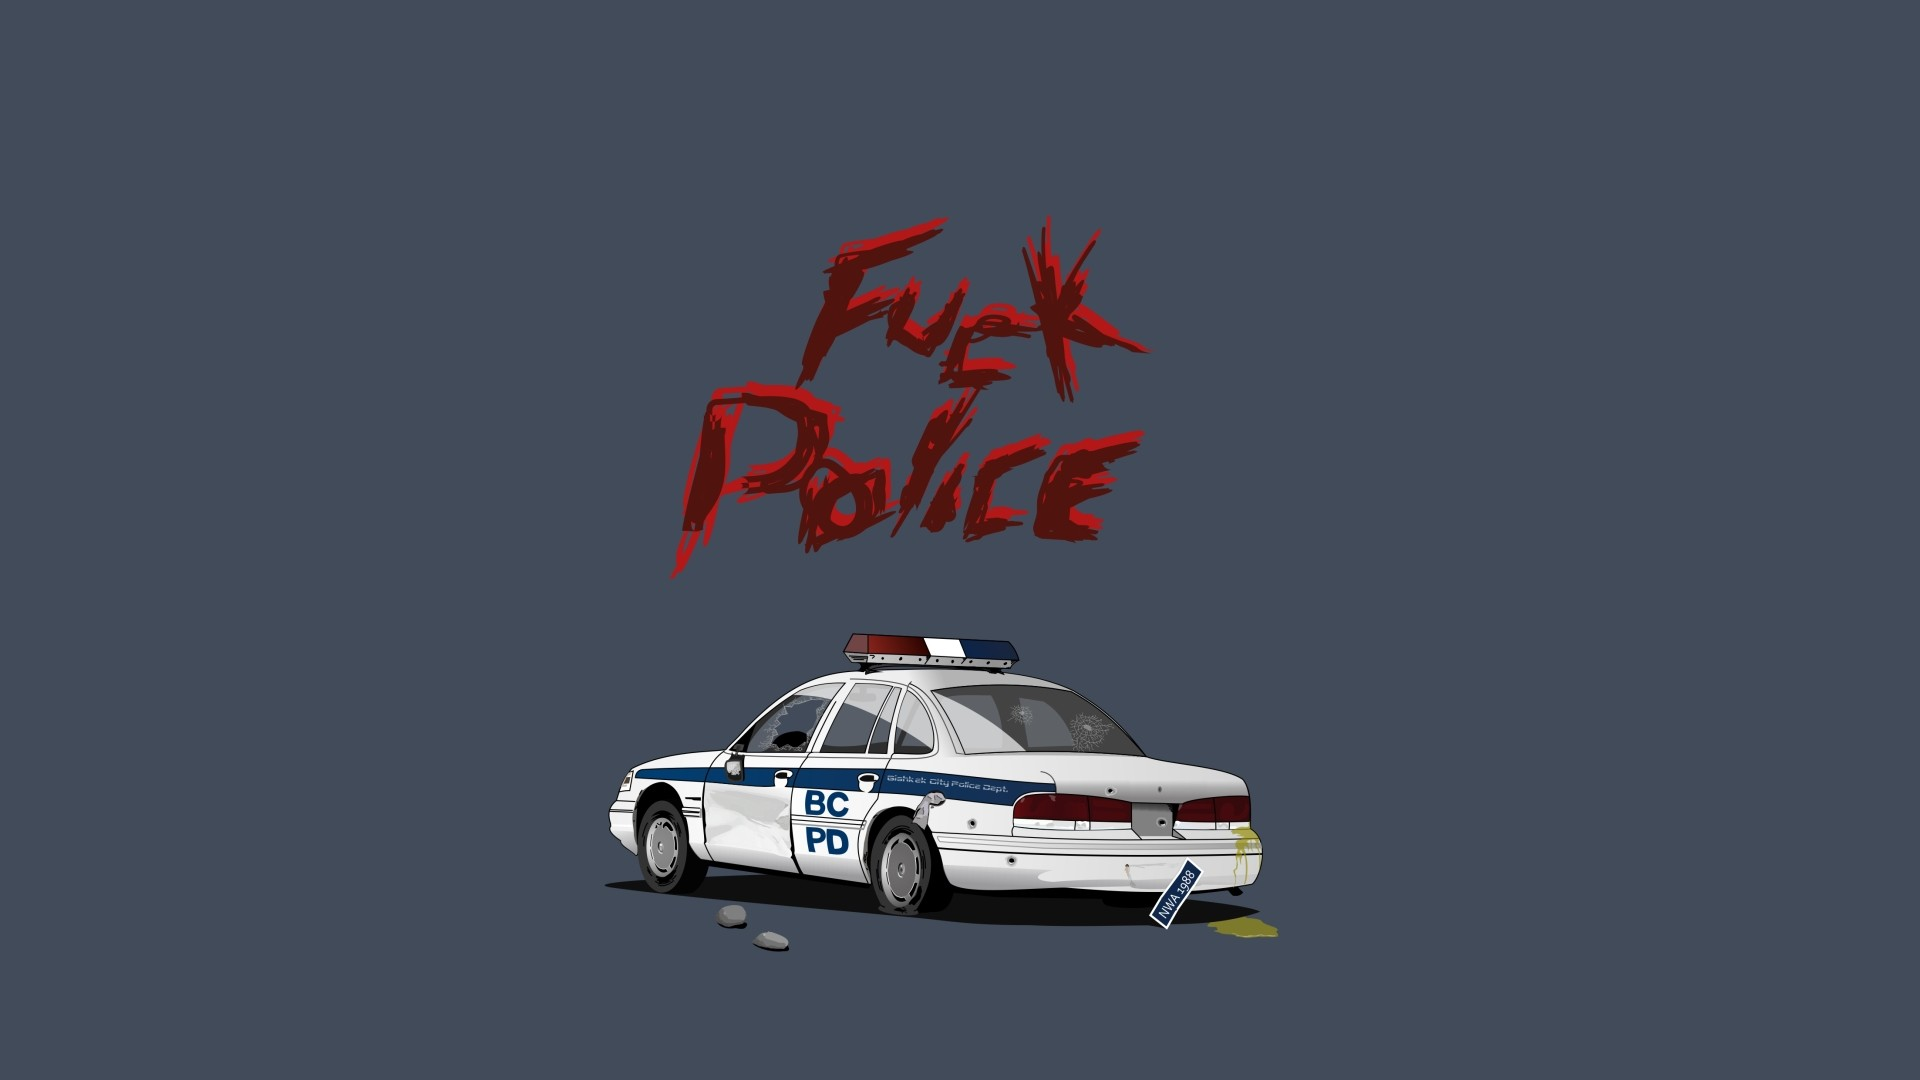 Police Officer Wallpaper 63 Images